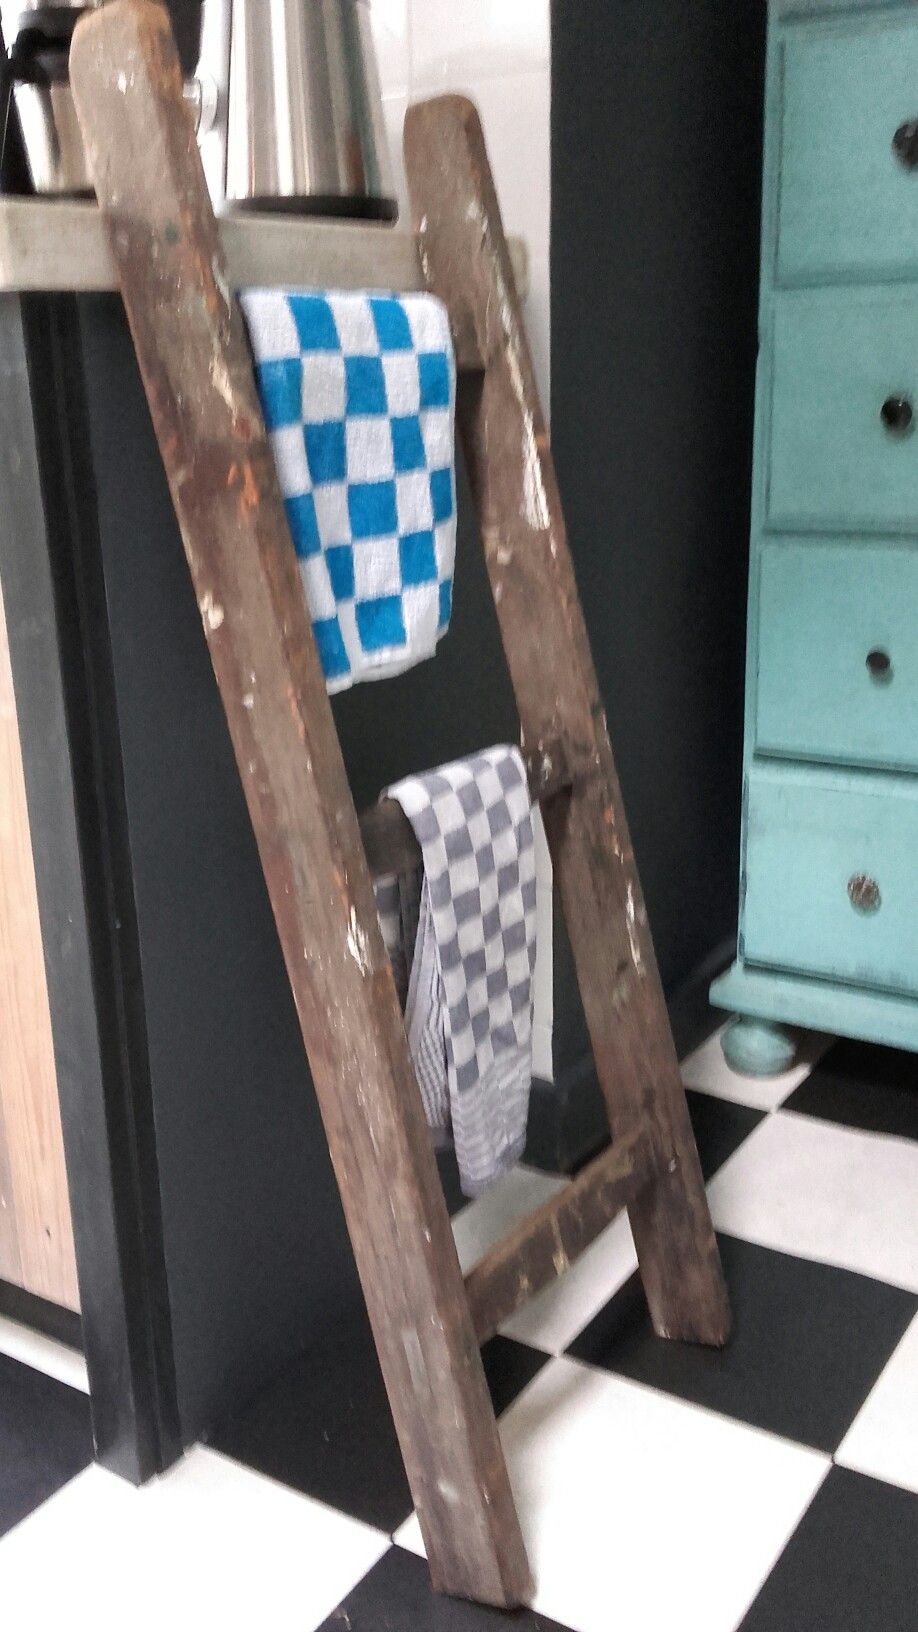 Handdoekenrek Ladder Handdoekenrek Ladder Kitchen Keuken Pinterest Ladders En